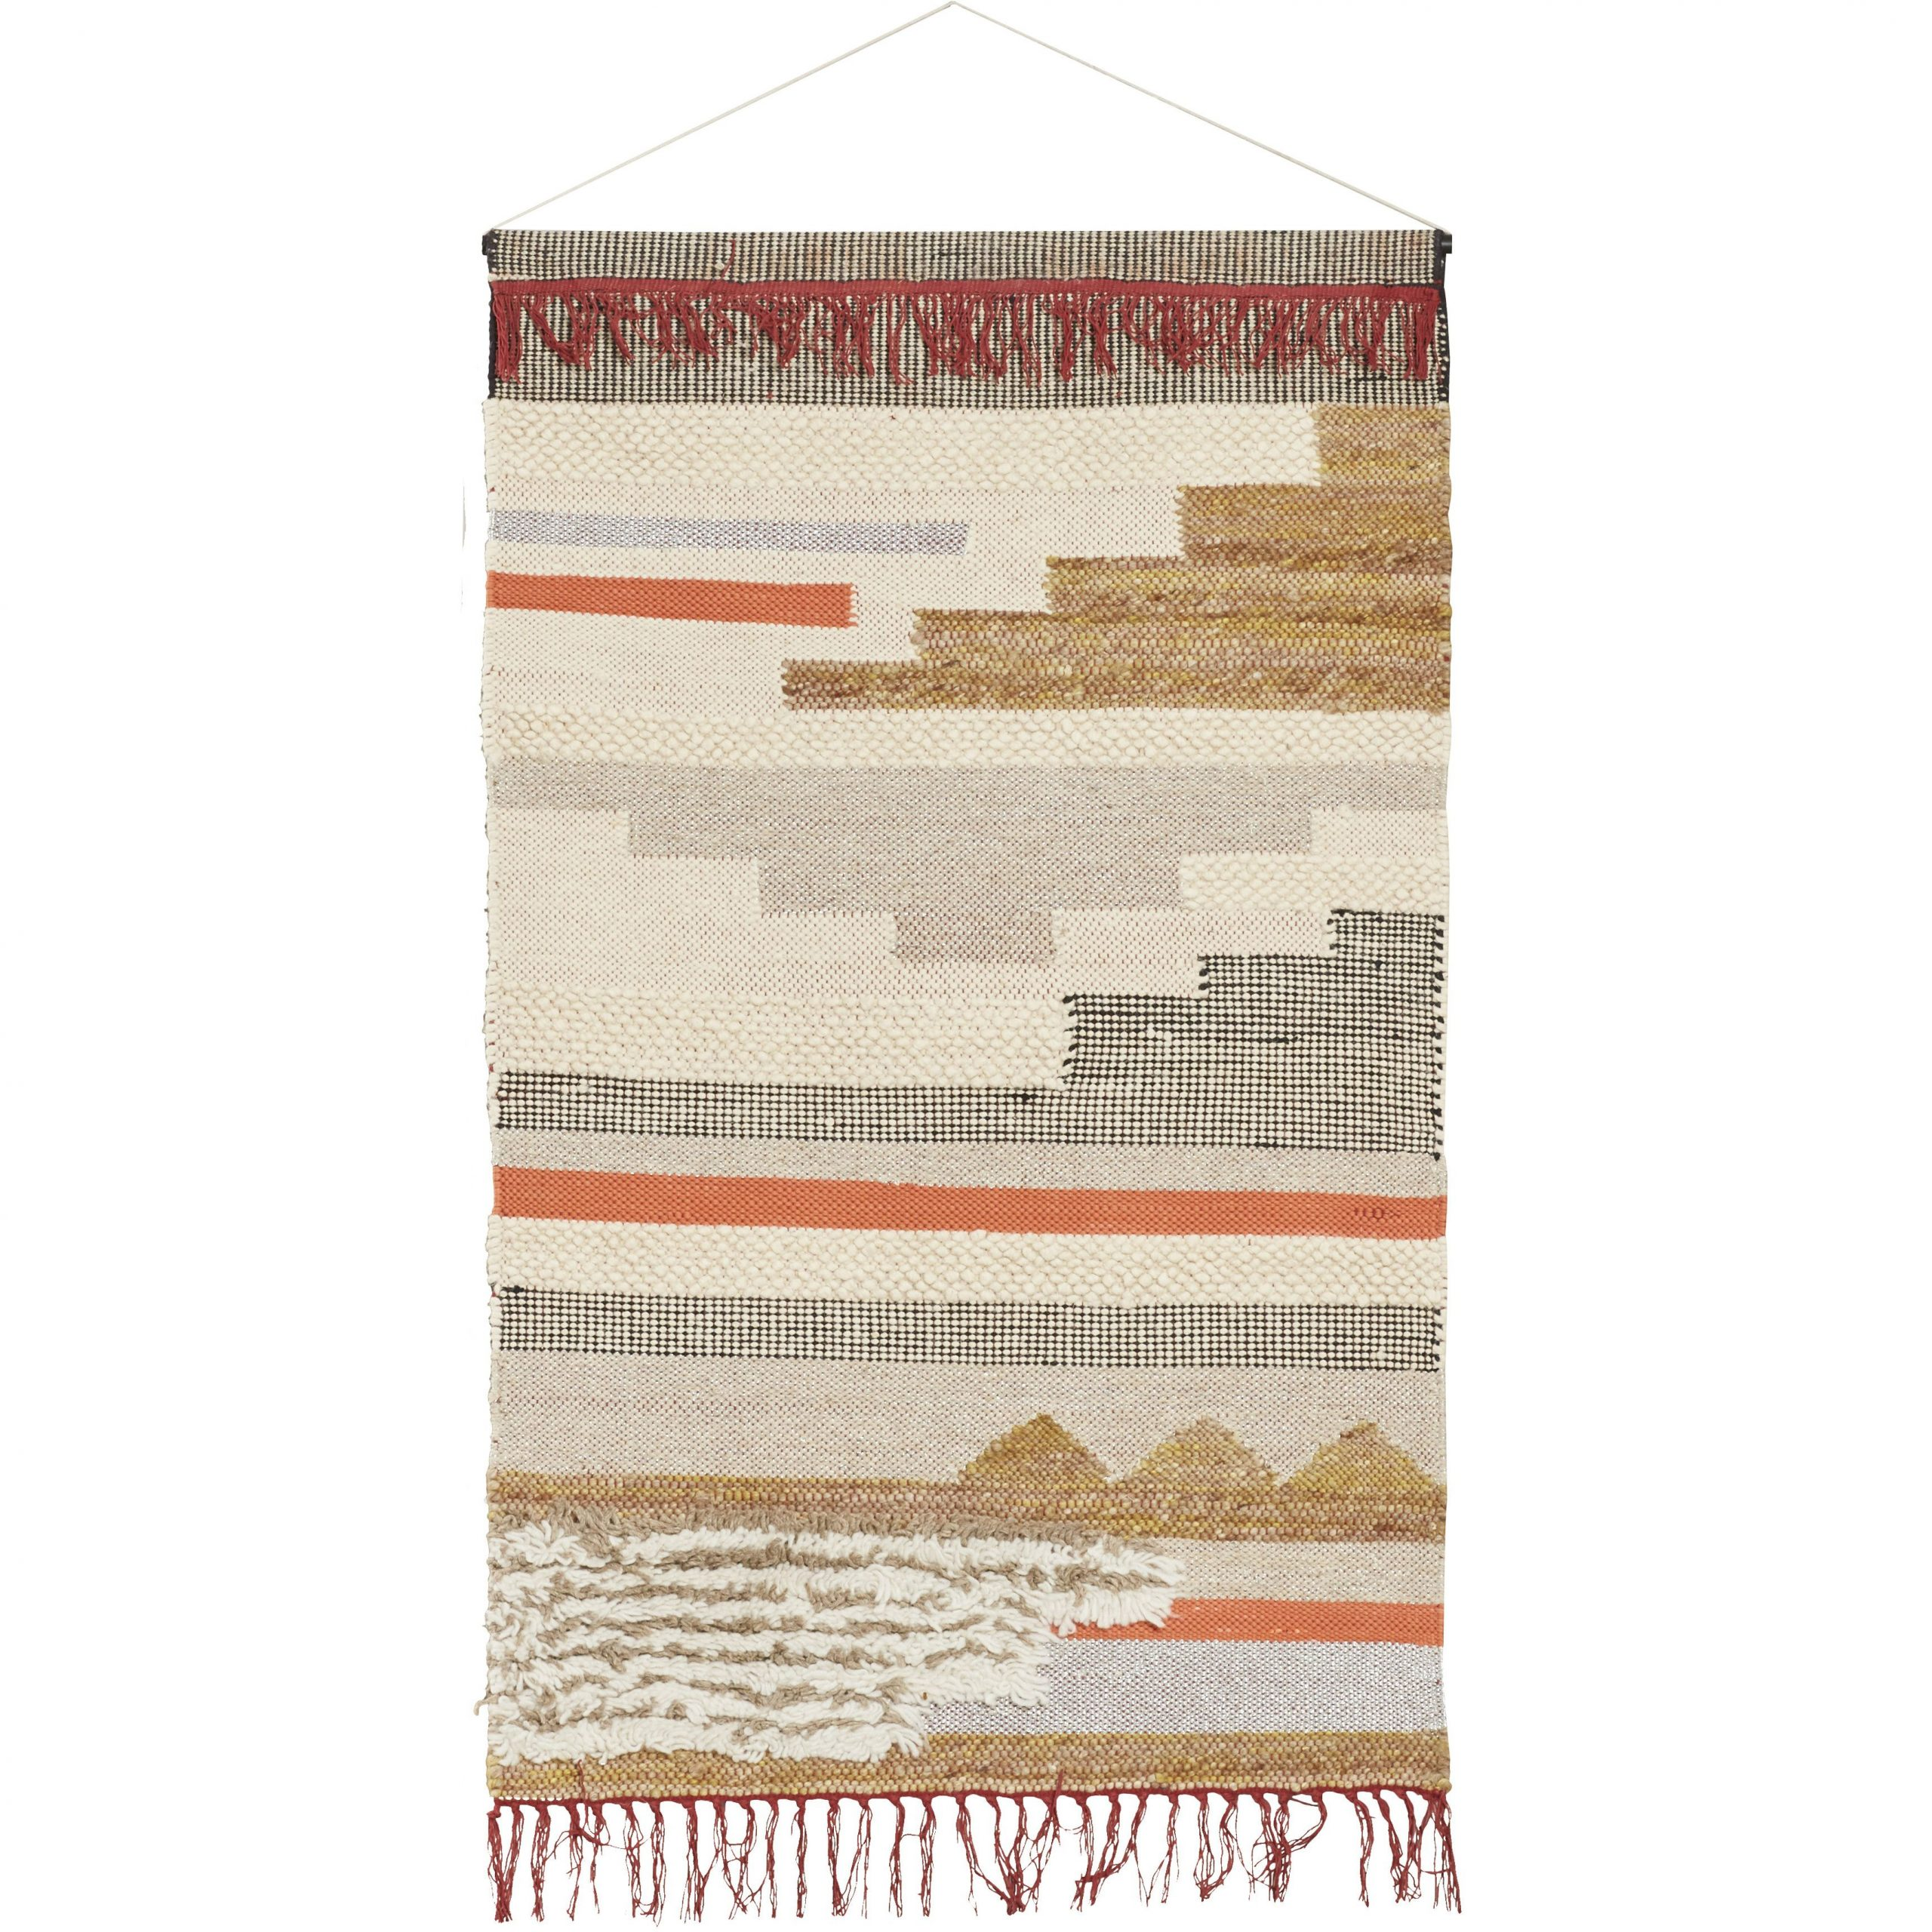 Newest Blended Fabric Wall Hanging With Hanging Accessories Inside Blended Fabric In His Tapestries And Wall Hangings (View 2 of 20)